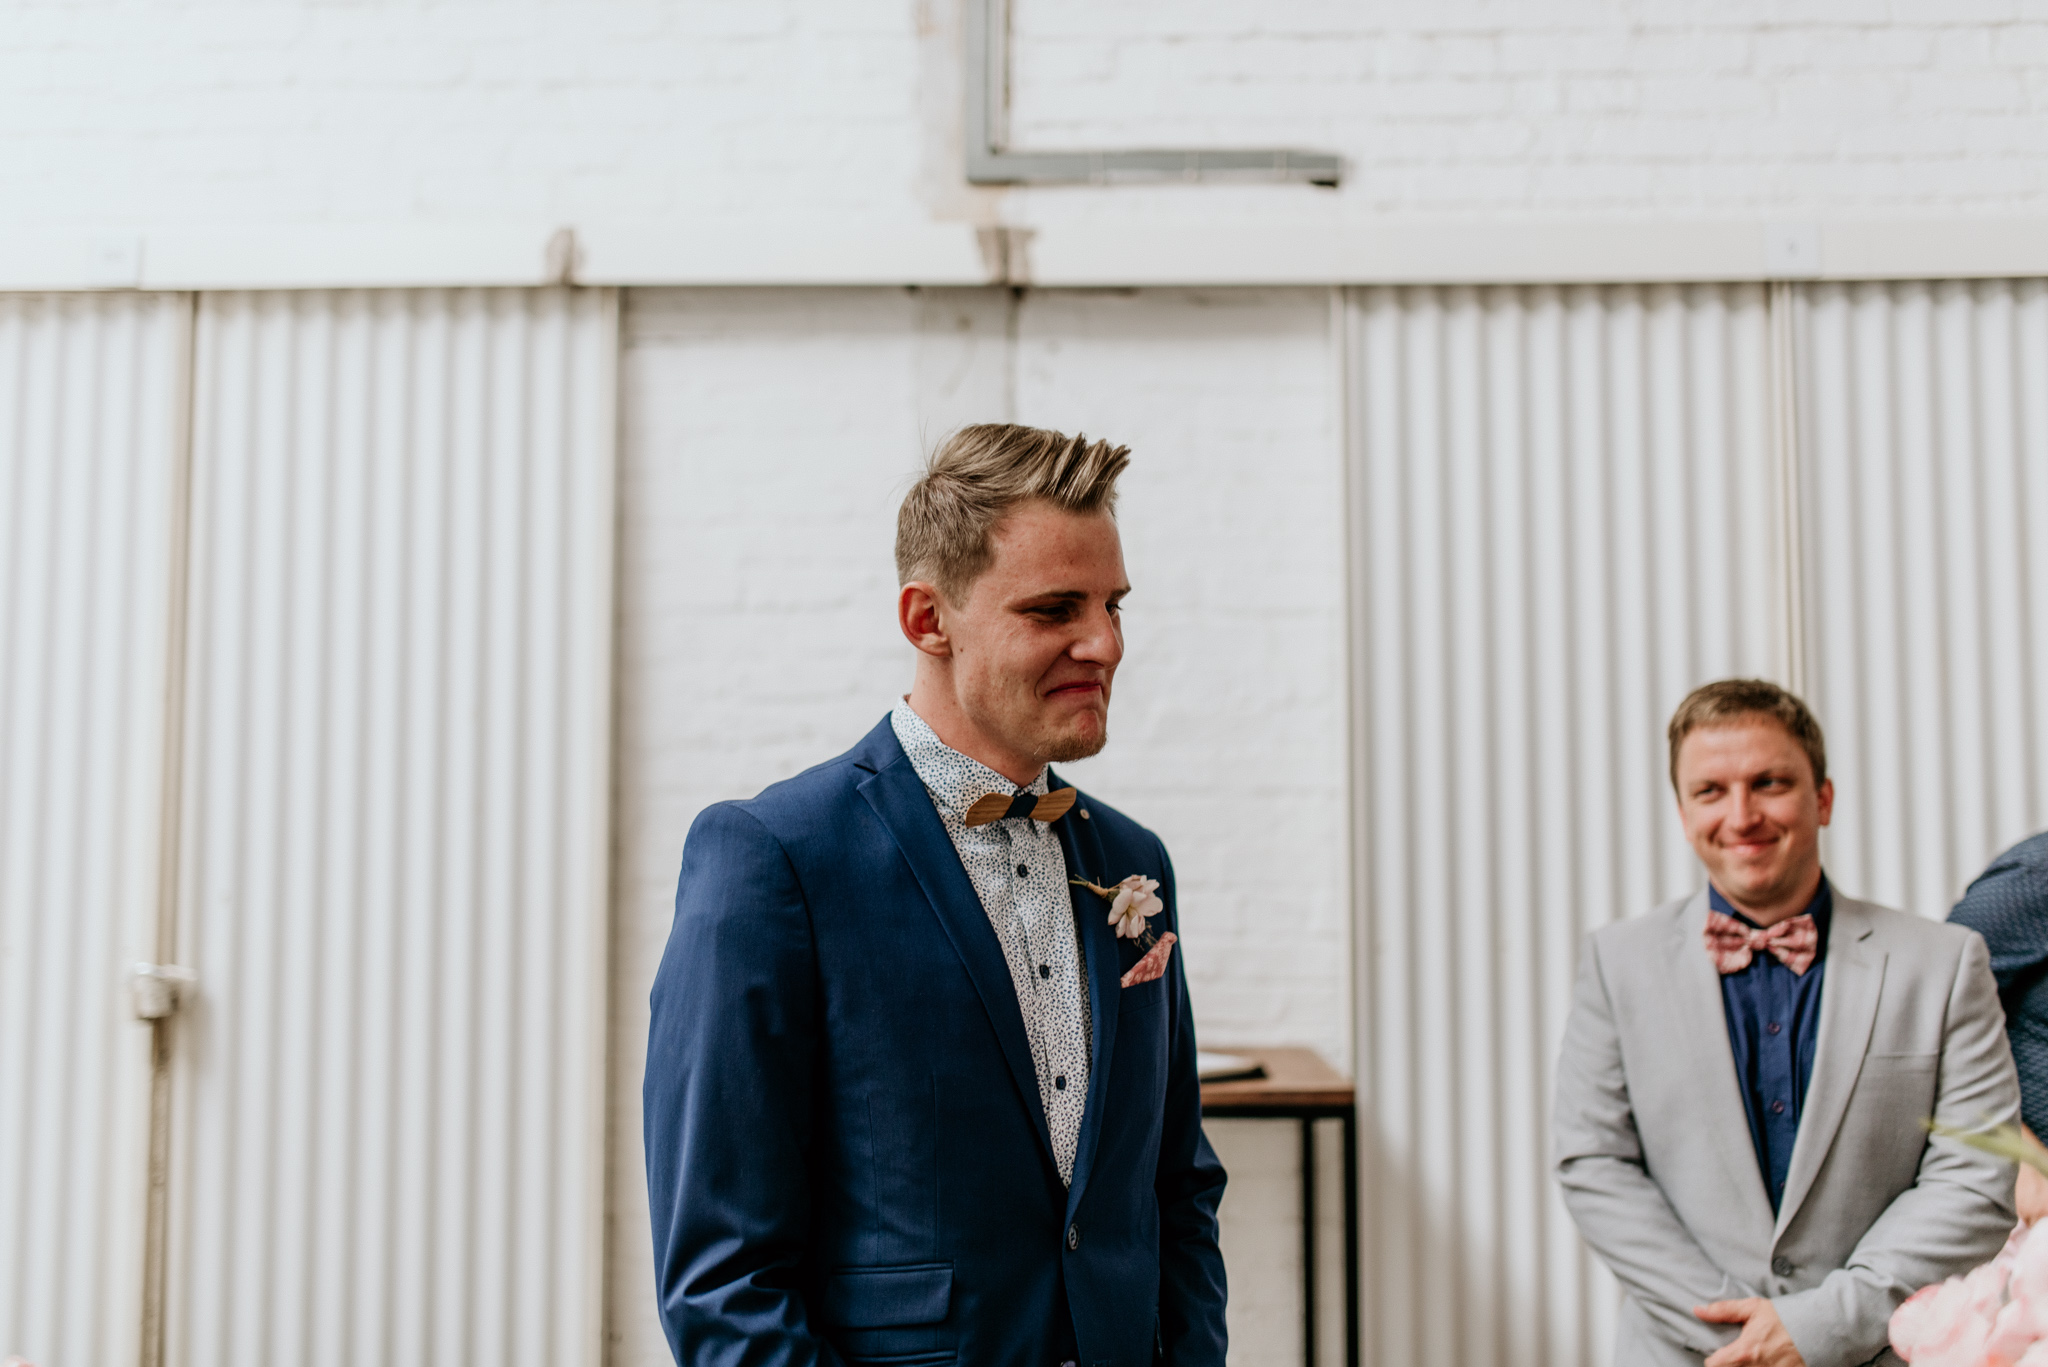 A dapper groom in a blue suit cries as he sees his bride for the first time - by Dillon Kin Photography